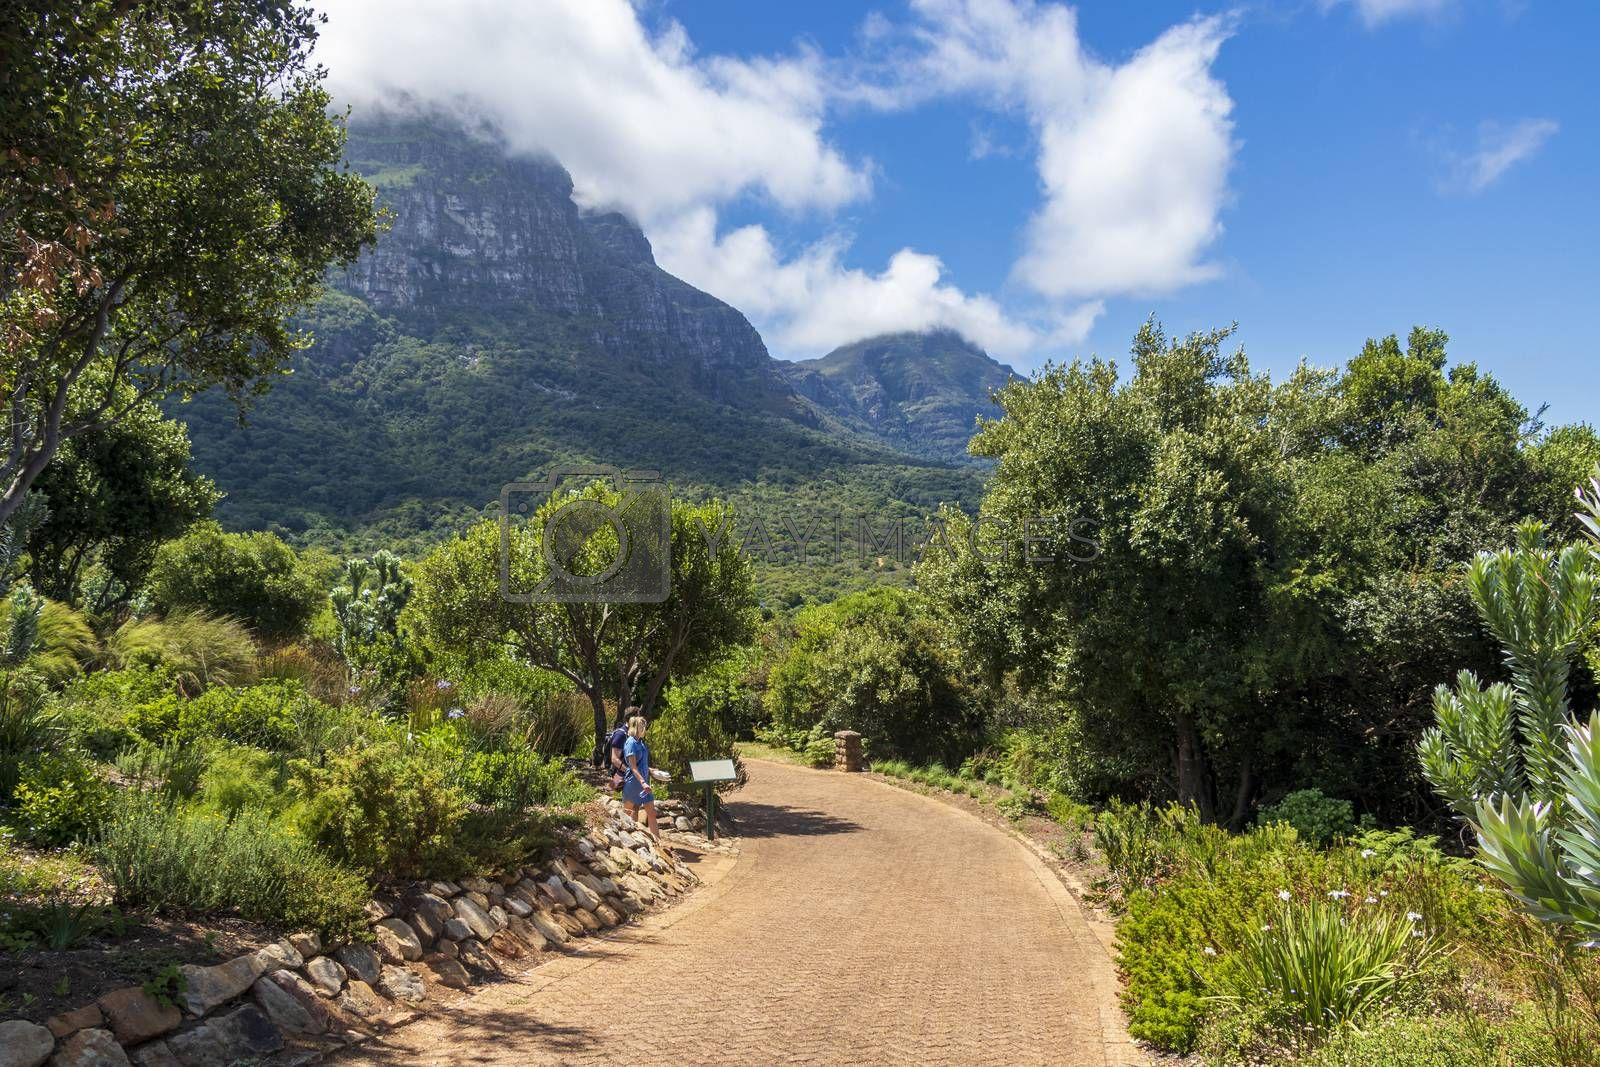 Mountains and trails Kirstenbosch National Botanical Garden, Cape Town, South Africa.